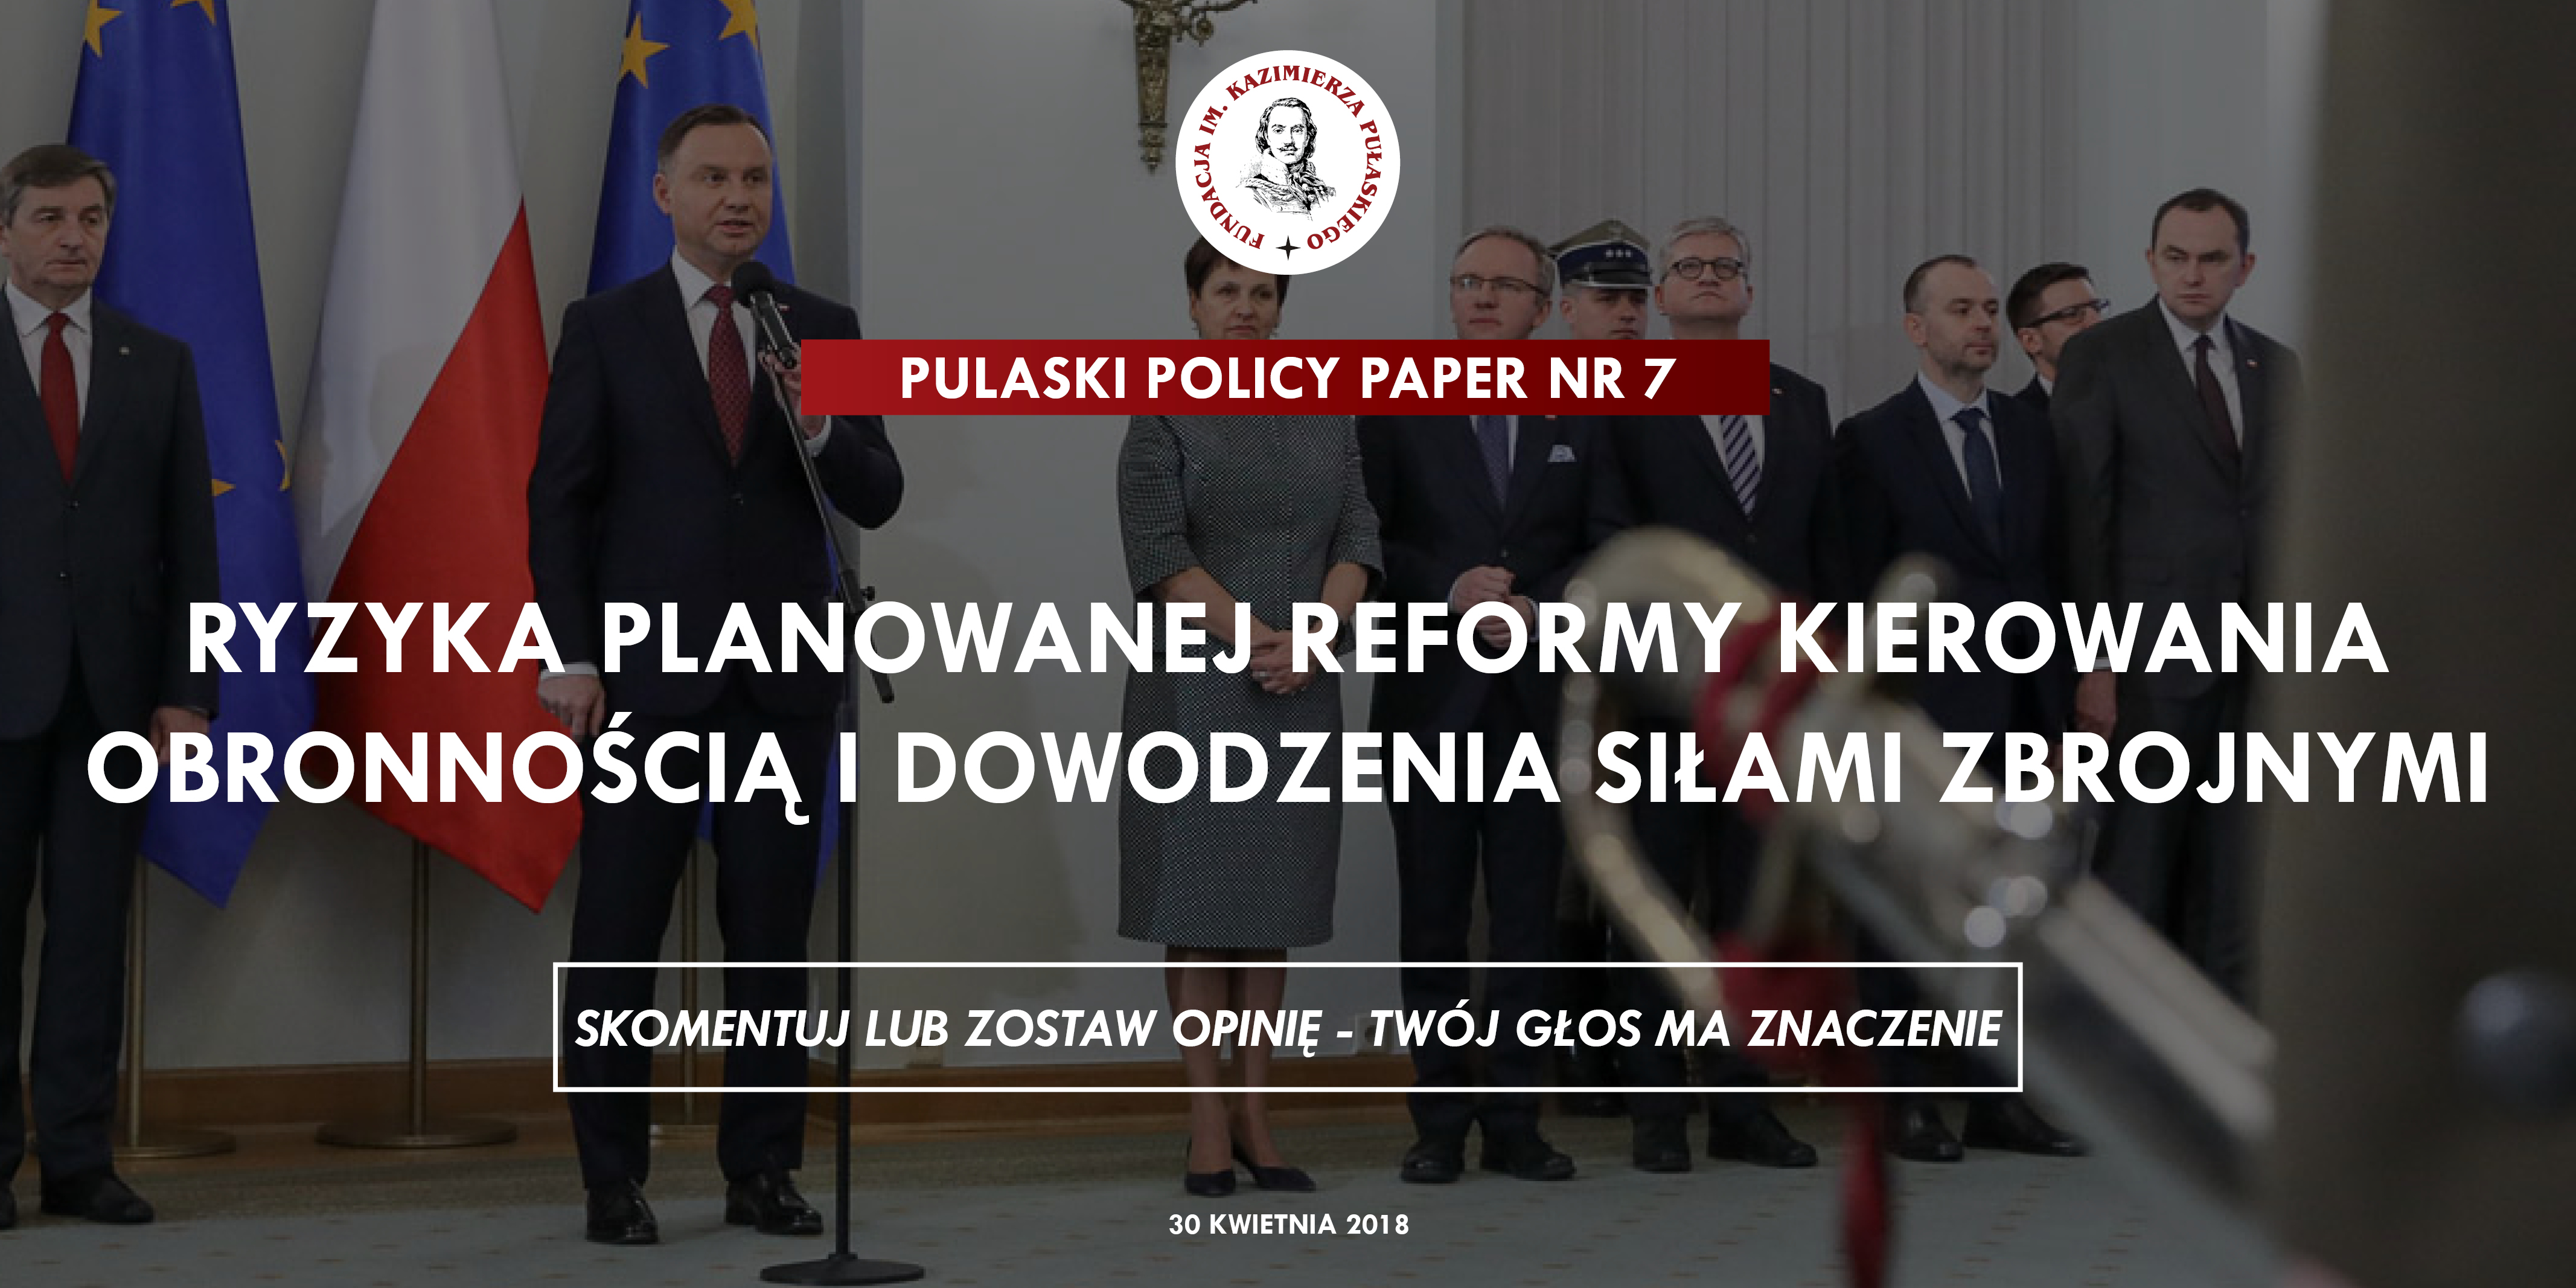 PULASKI POLICY PAPER: The risks of the proposed reform of the command and control system of Poland's Armed Forces